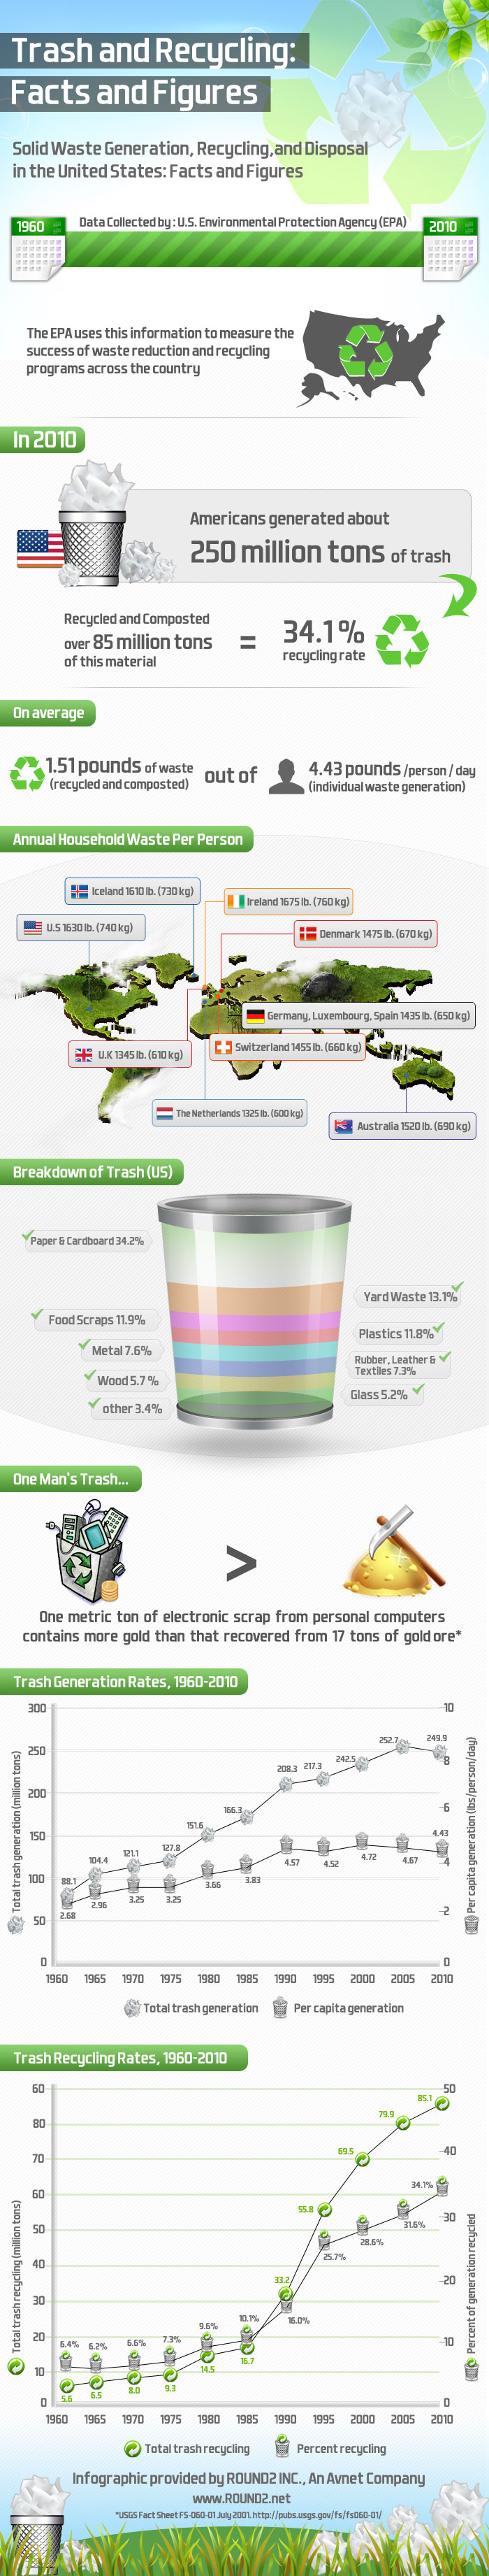 Trash and Recycling Trends